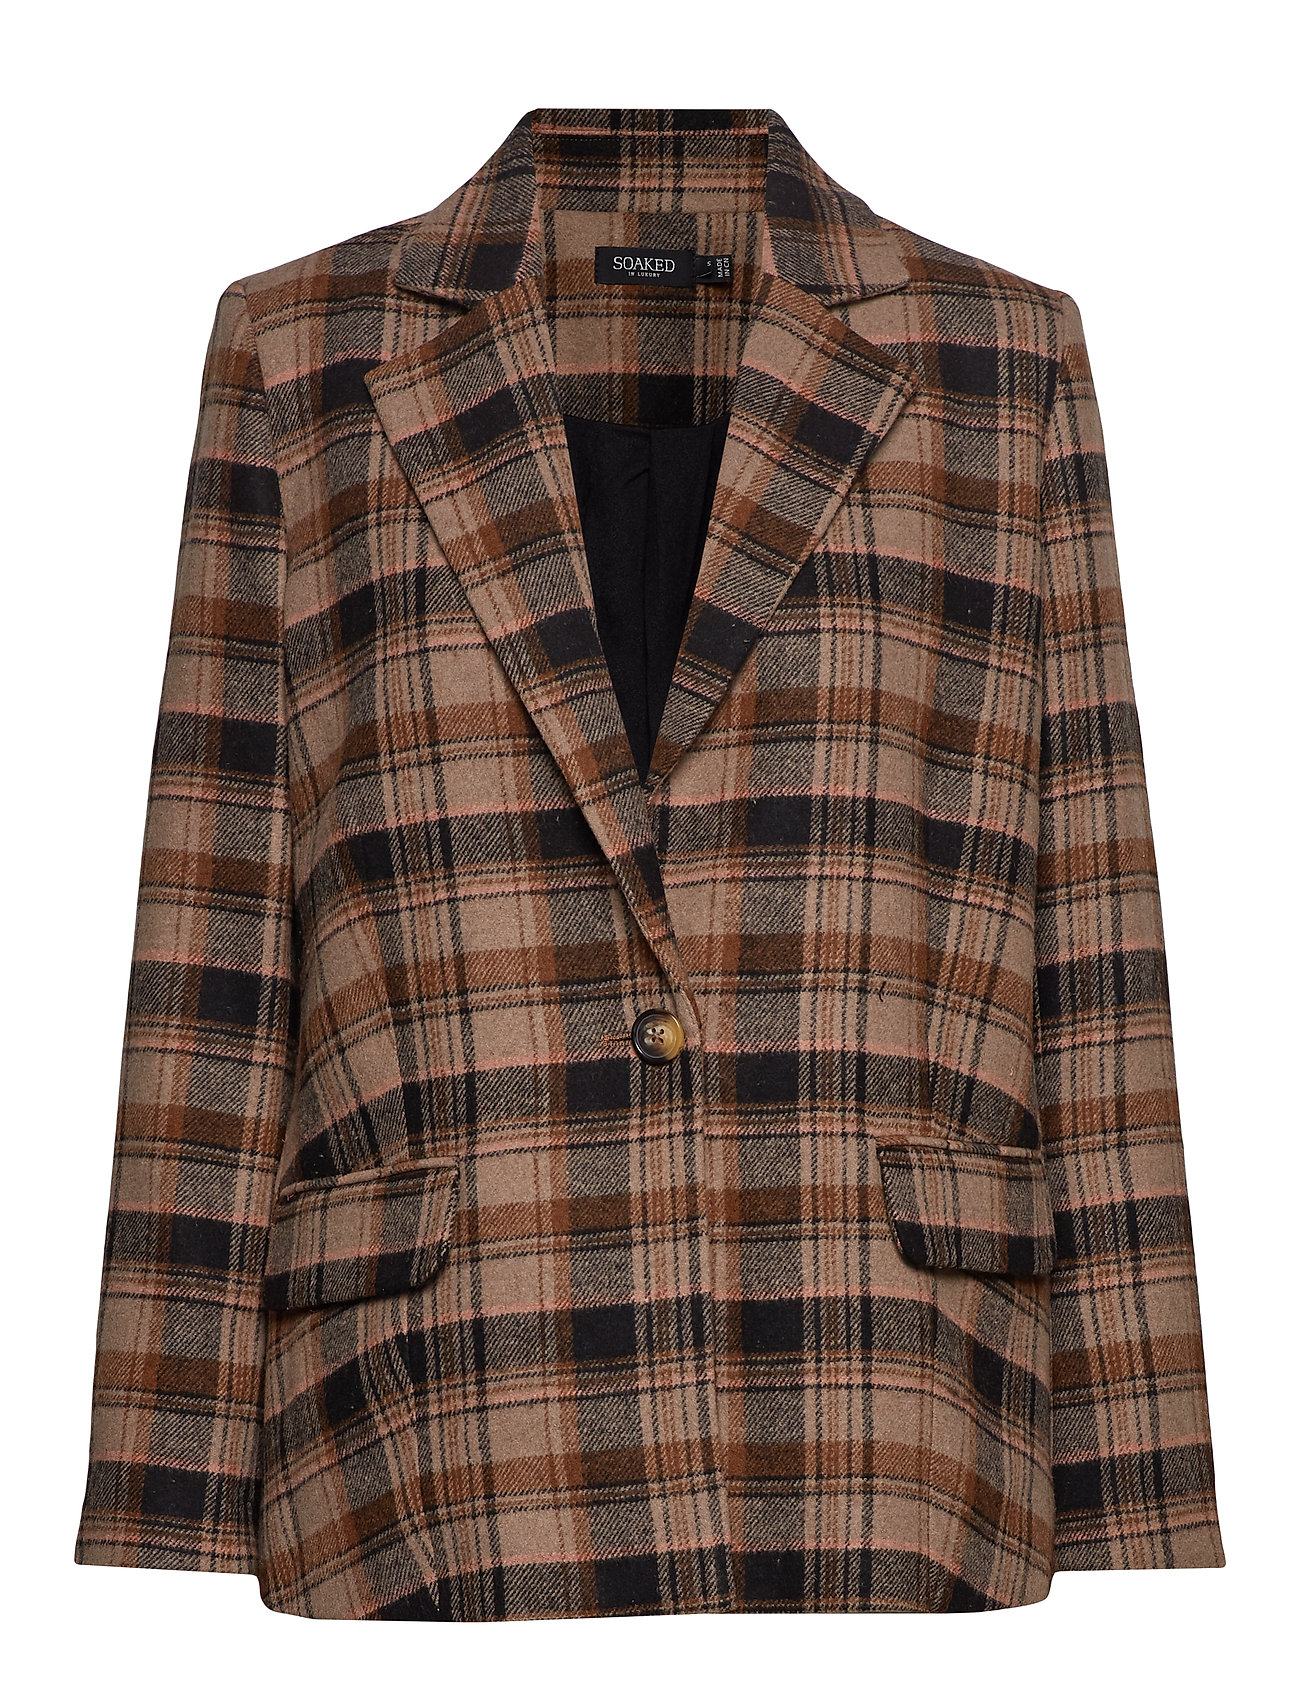 Soaked in Luxury SL Indie Check Blazer - EUCALYPTUS CHECK PATTERN